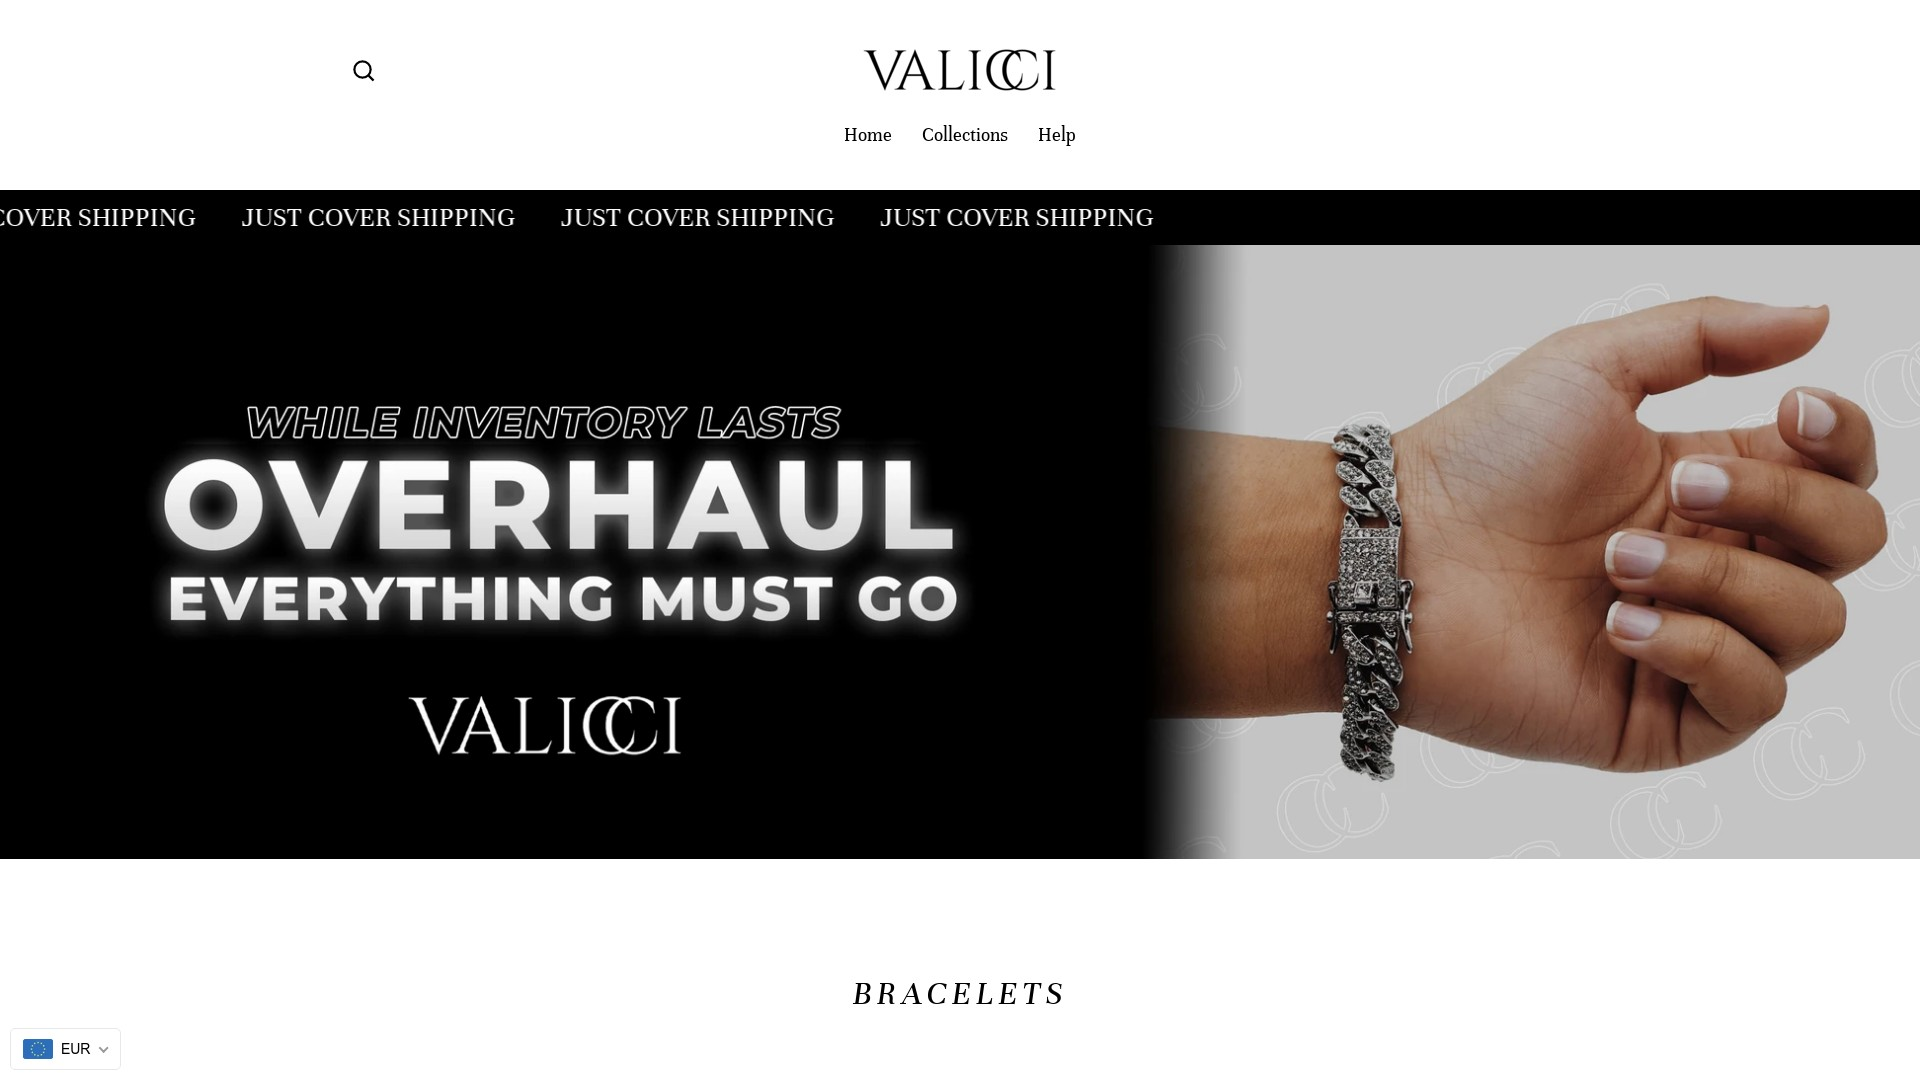 Is Valicci Overhaul a Scam - valicci.com